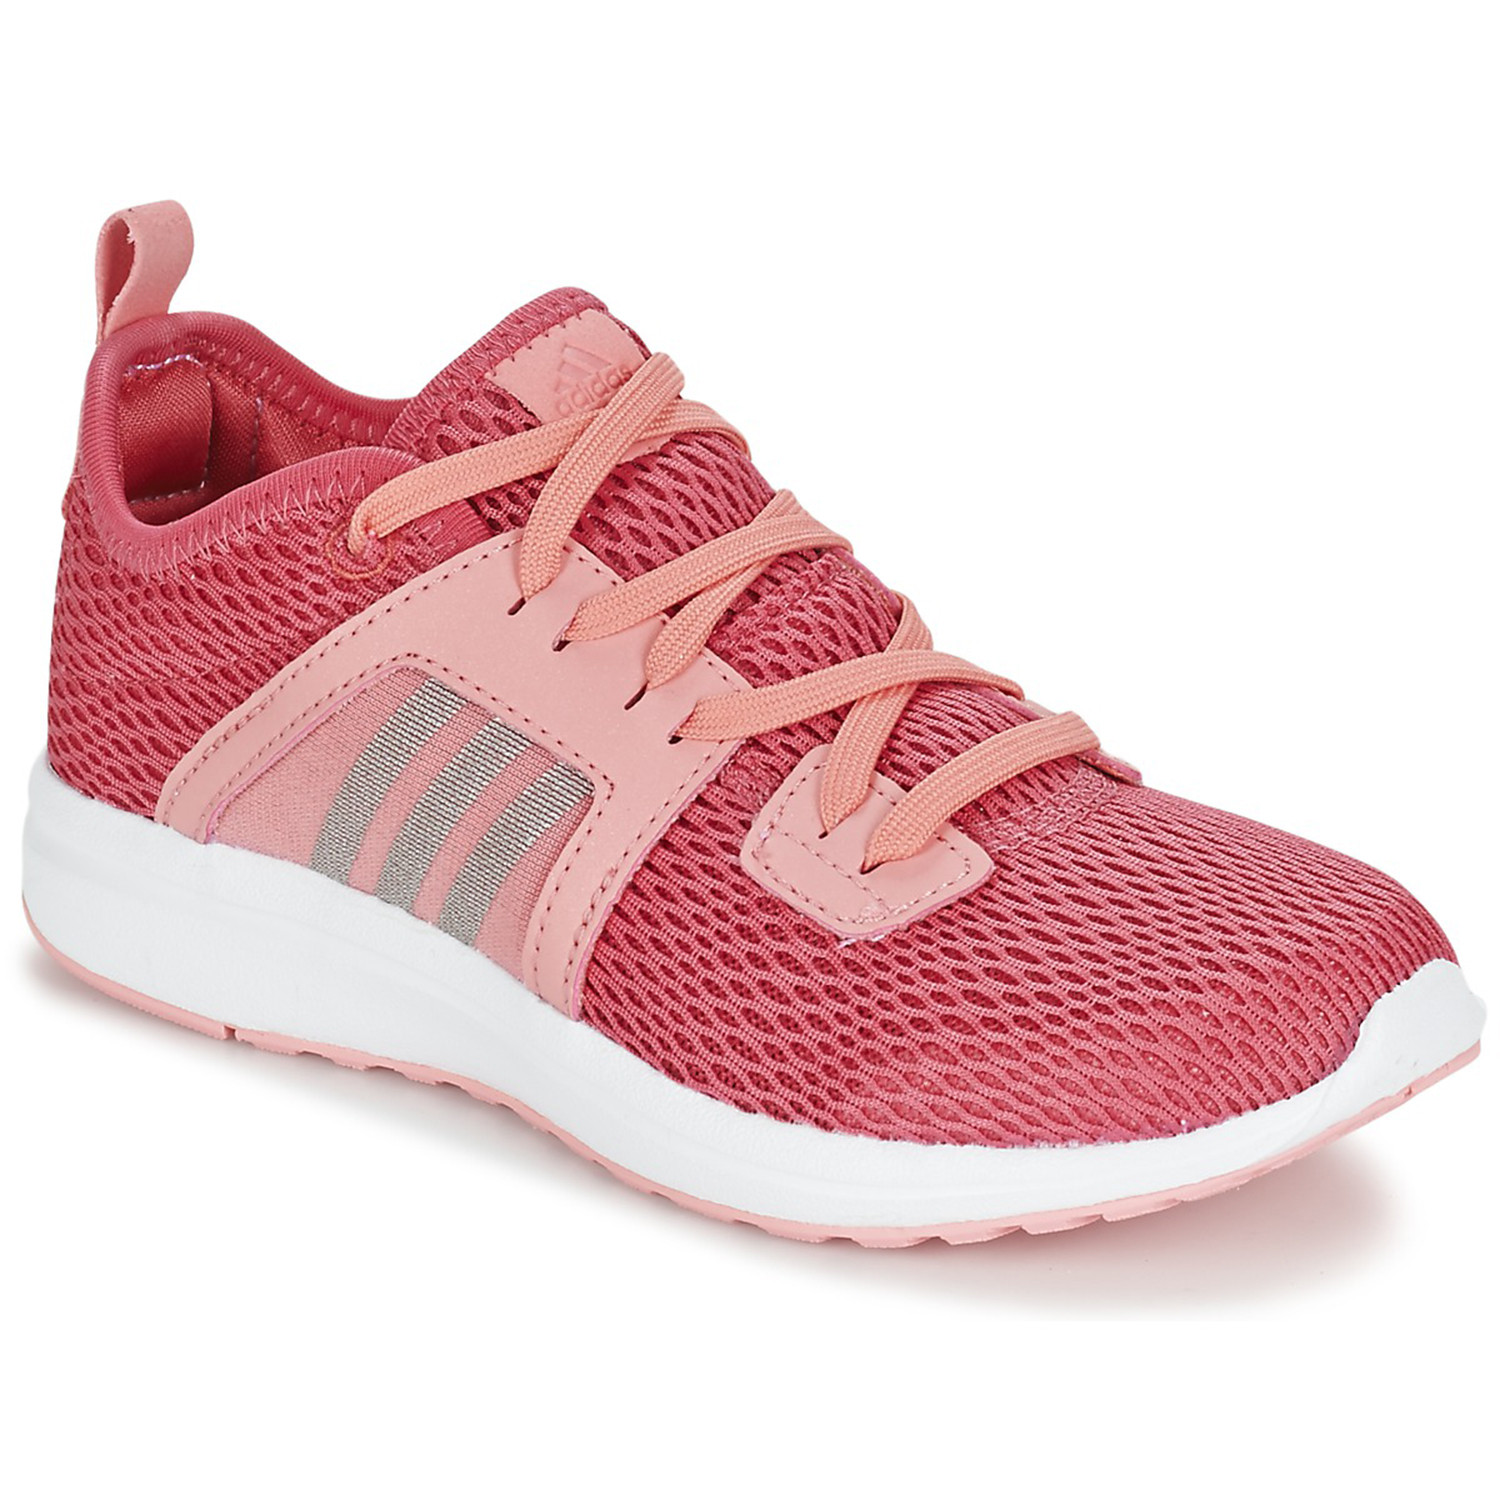 Rose Cher Pas Chaussure Adidas K Fille Durama De Chaussures IS1wq6Ux